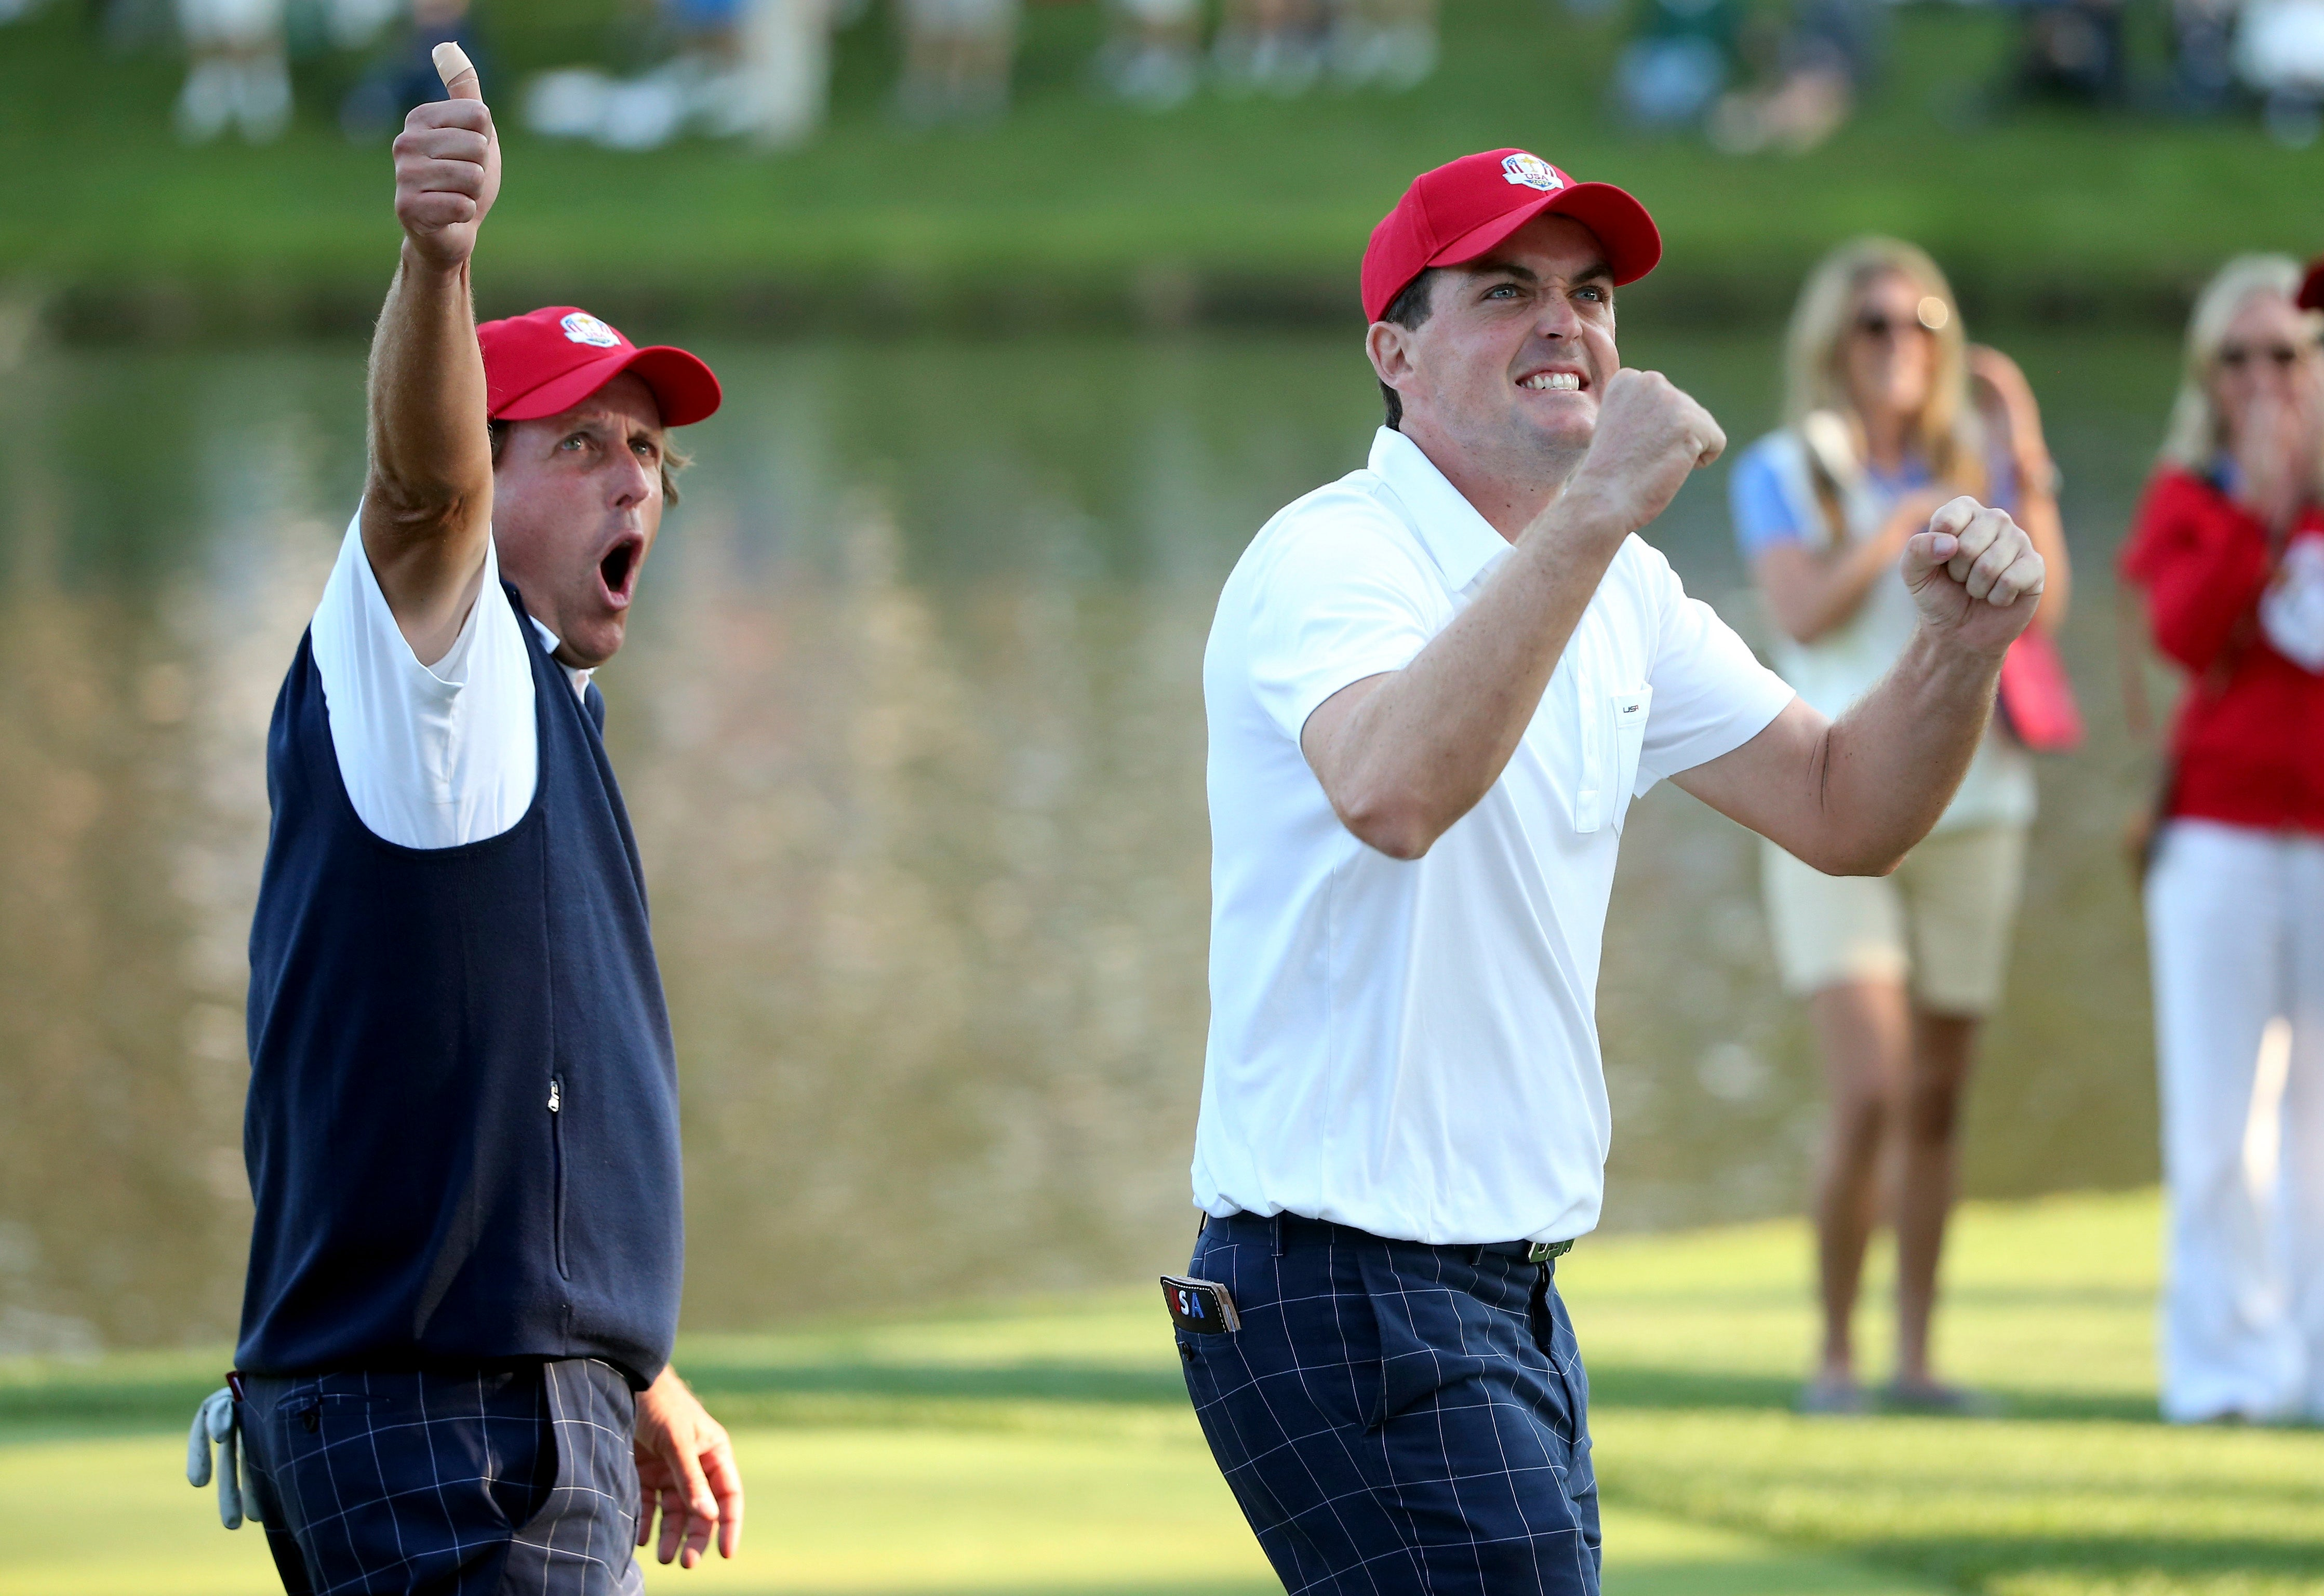 Follow the action at the 2018 Ryder Cup at Le Golf National Paris France Sept 2530 Watch Live Video find Scores News Media information on Teams and Player